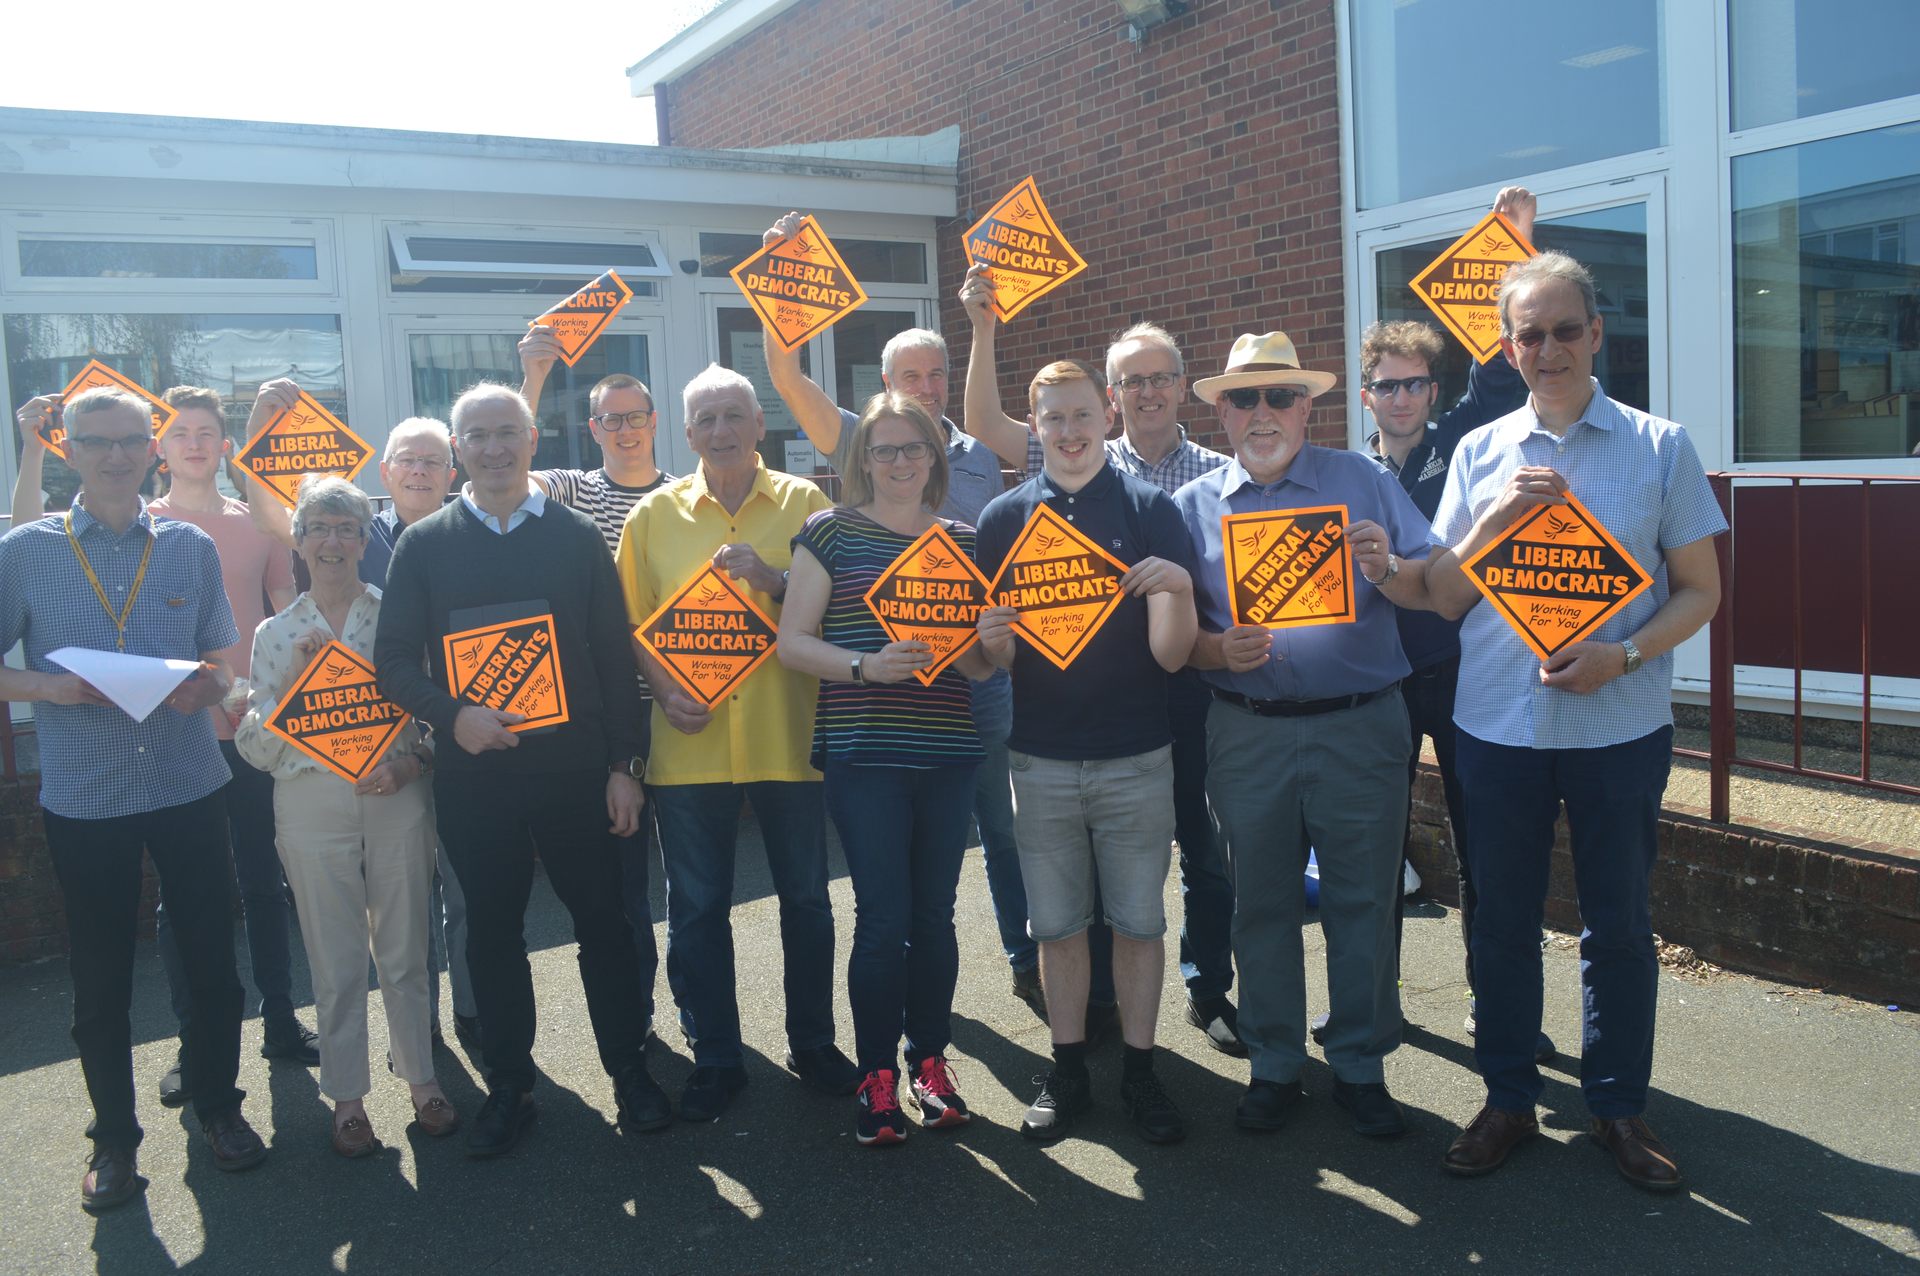 Lib Dems in Brentwood (Karen Chilvers)